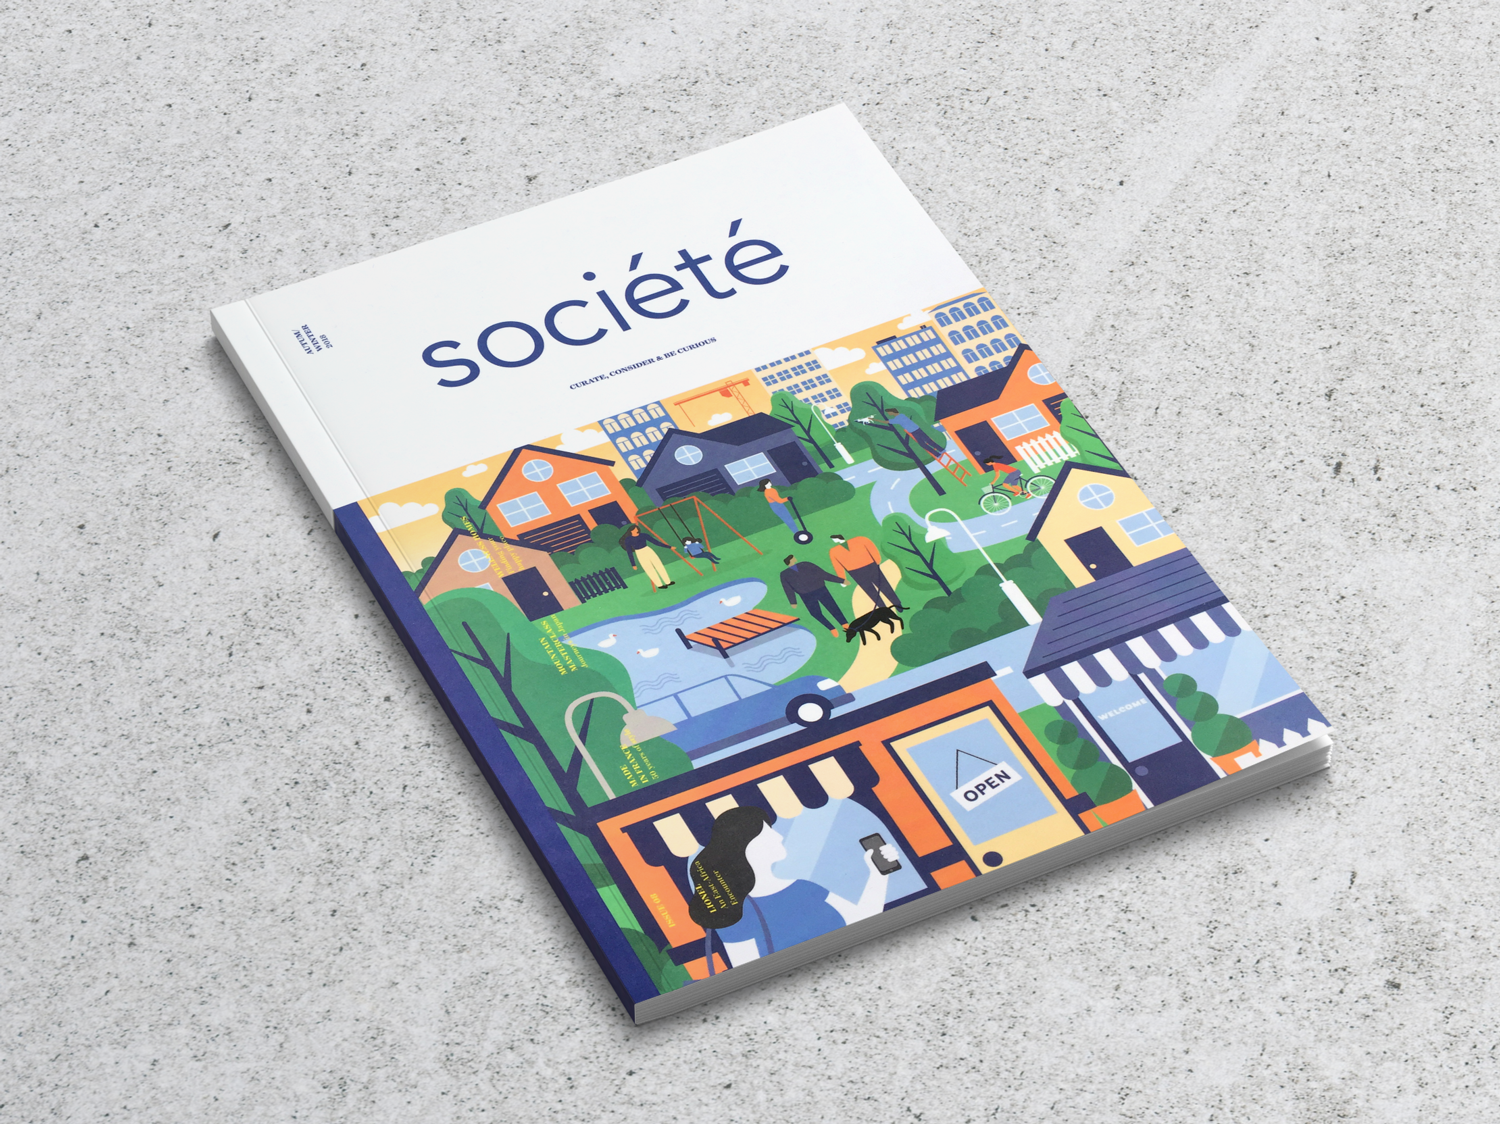 Societe-magazine-cover.png